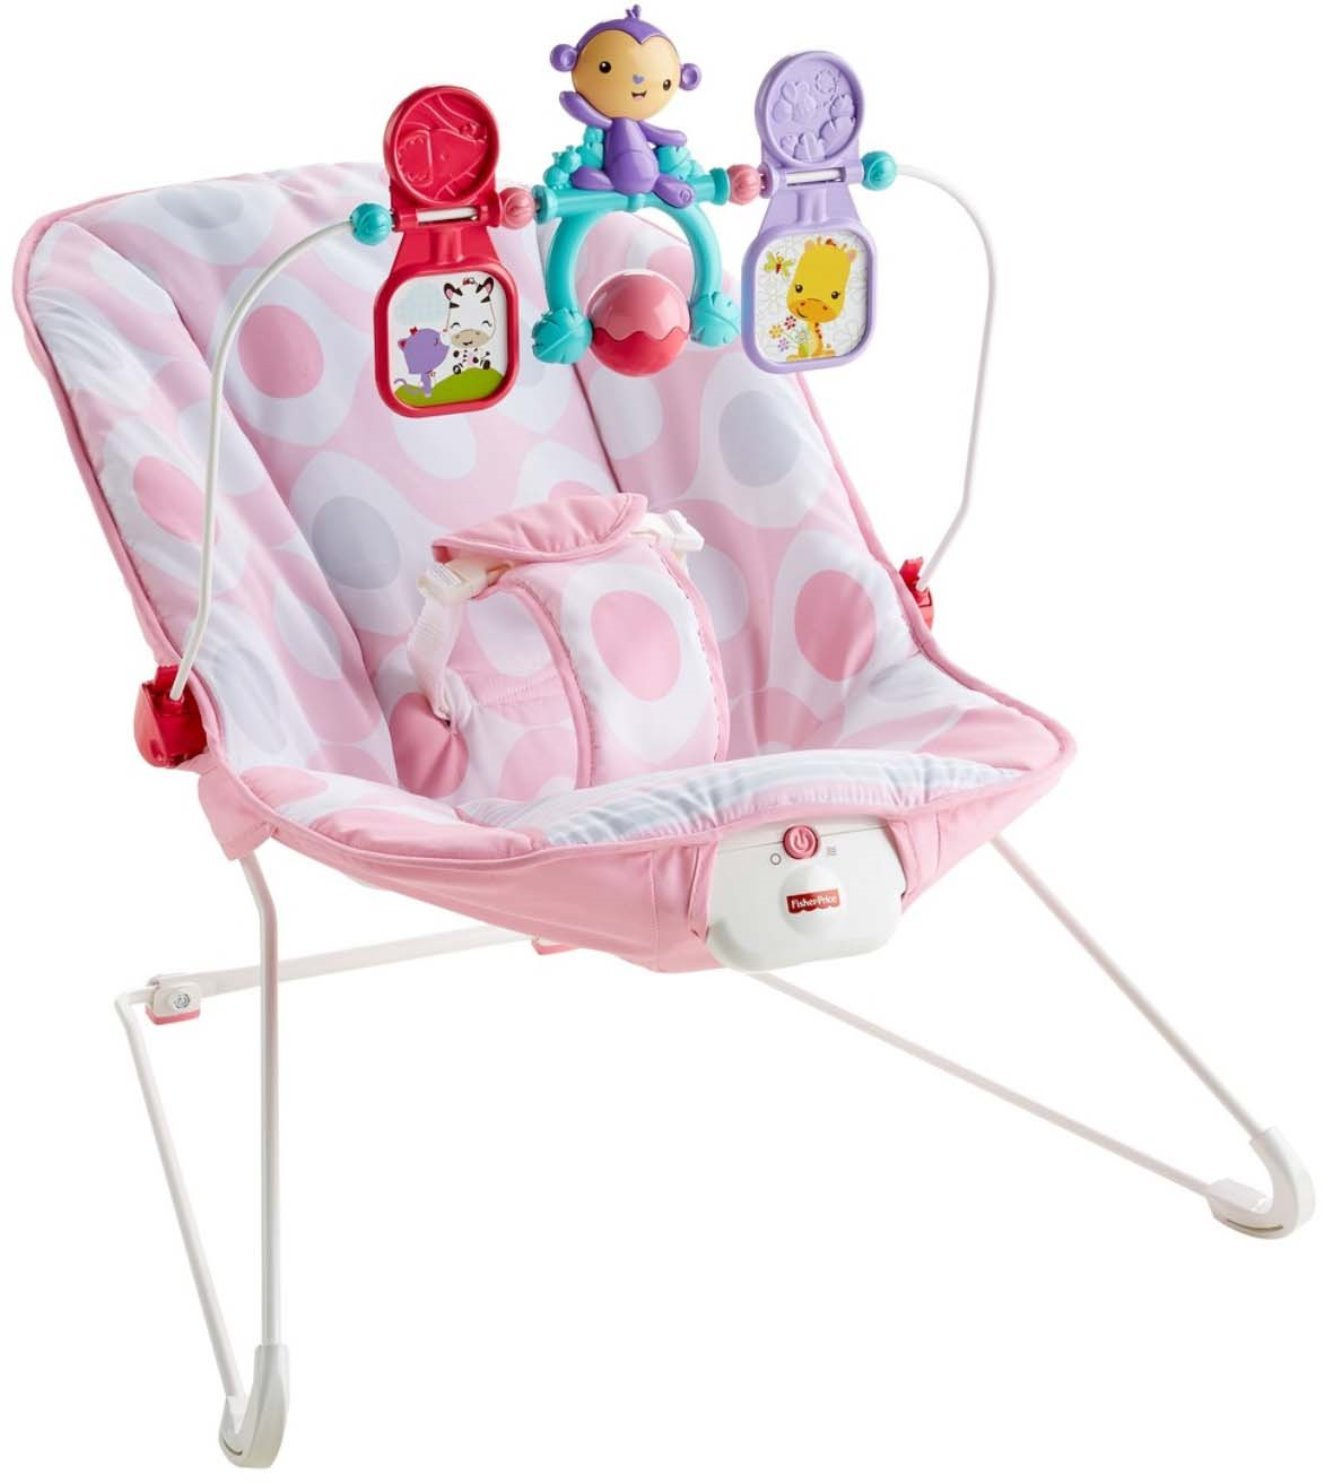 Fisher-Price Baby's Bouncer, Pink Ellipse CMR11